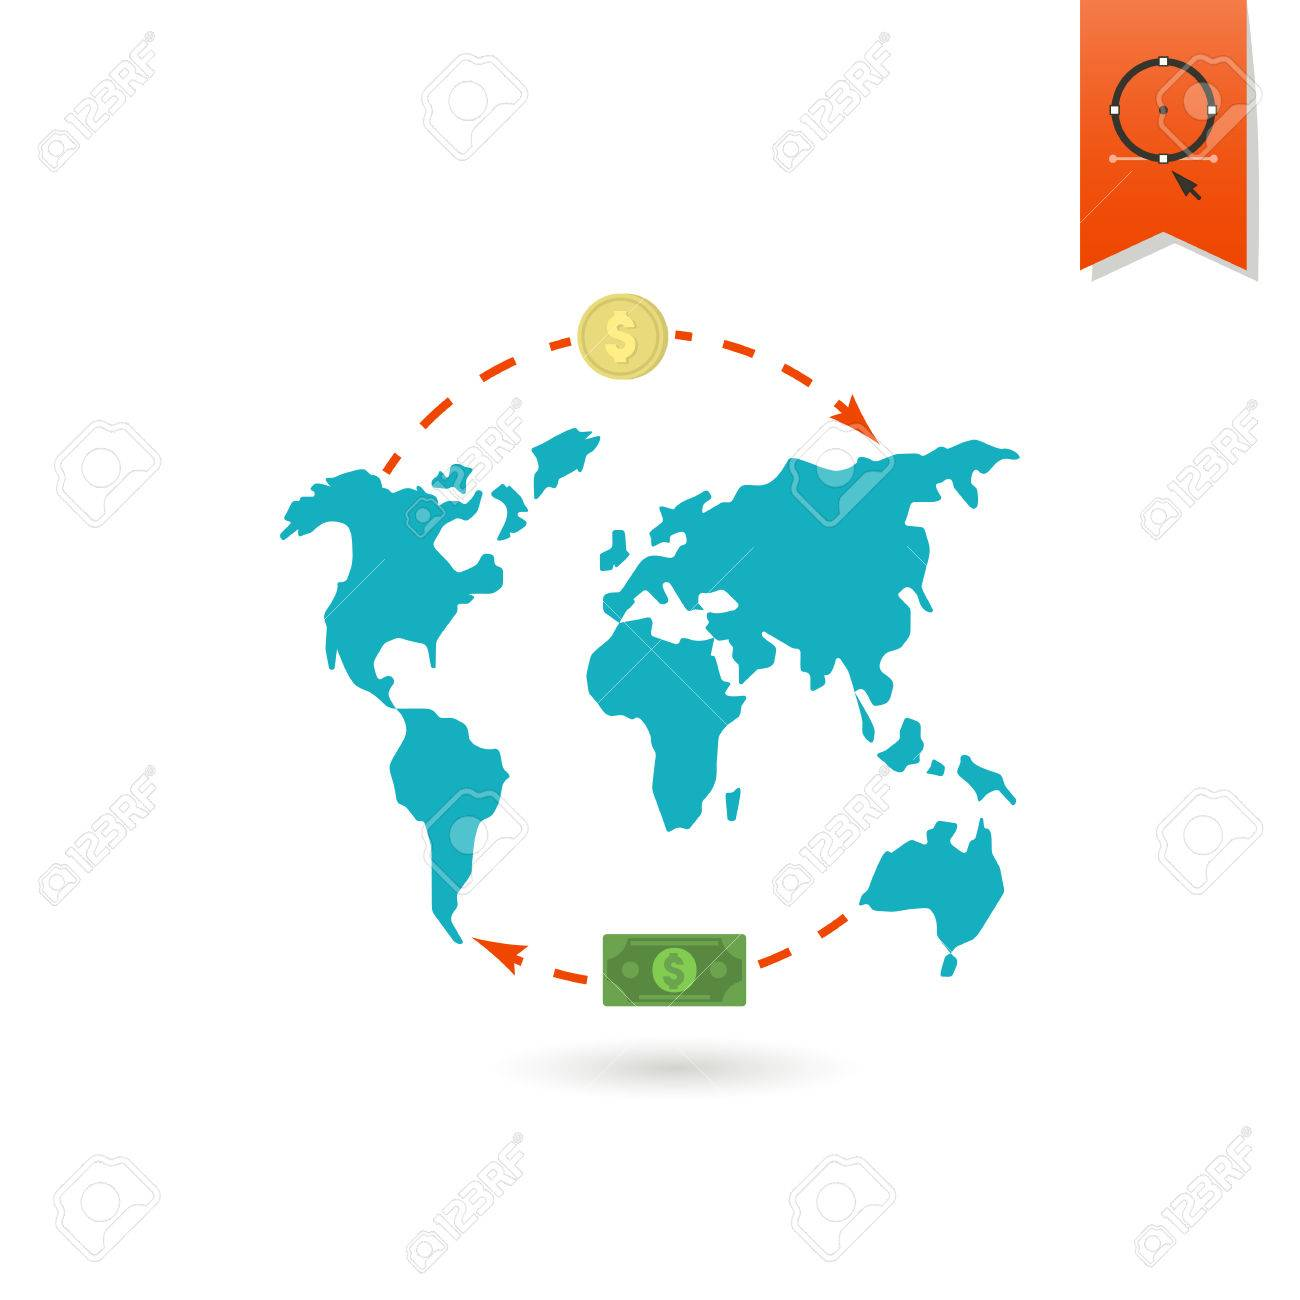 World map and money business and finance single flat icon royalty vector world map and money business and finance single flat icon gumiabroncs Image collections